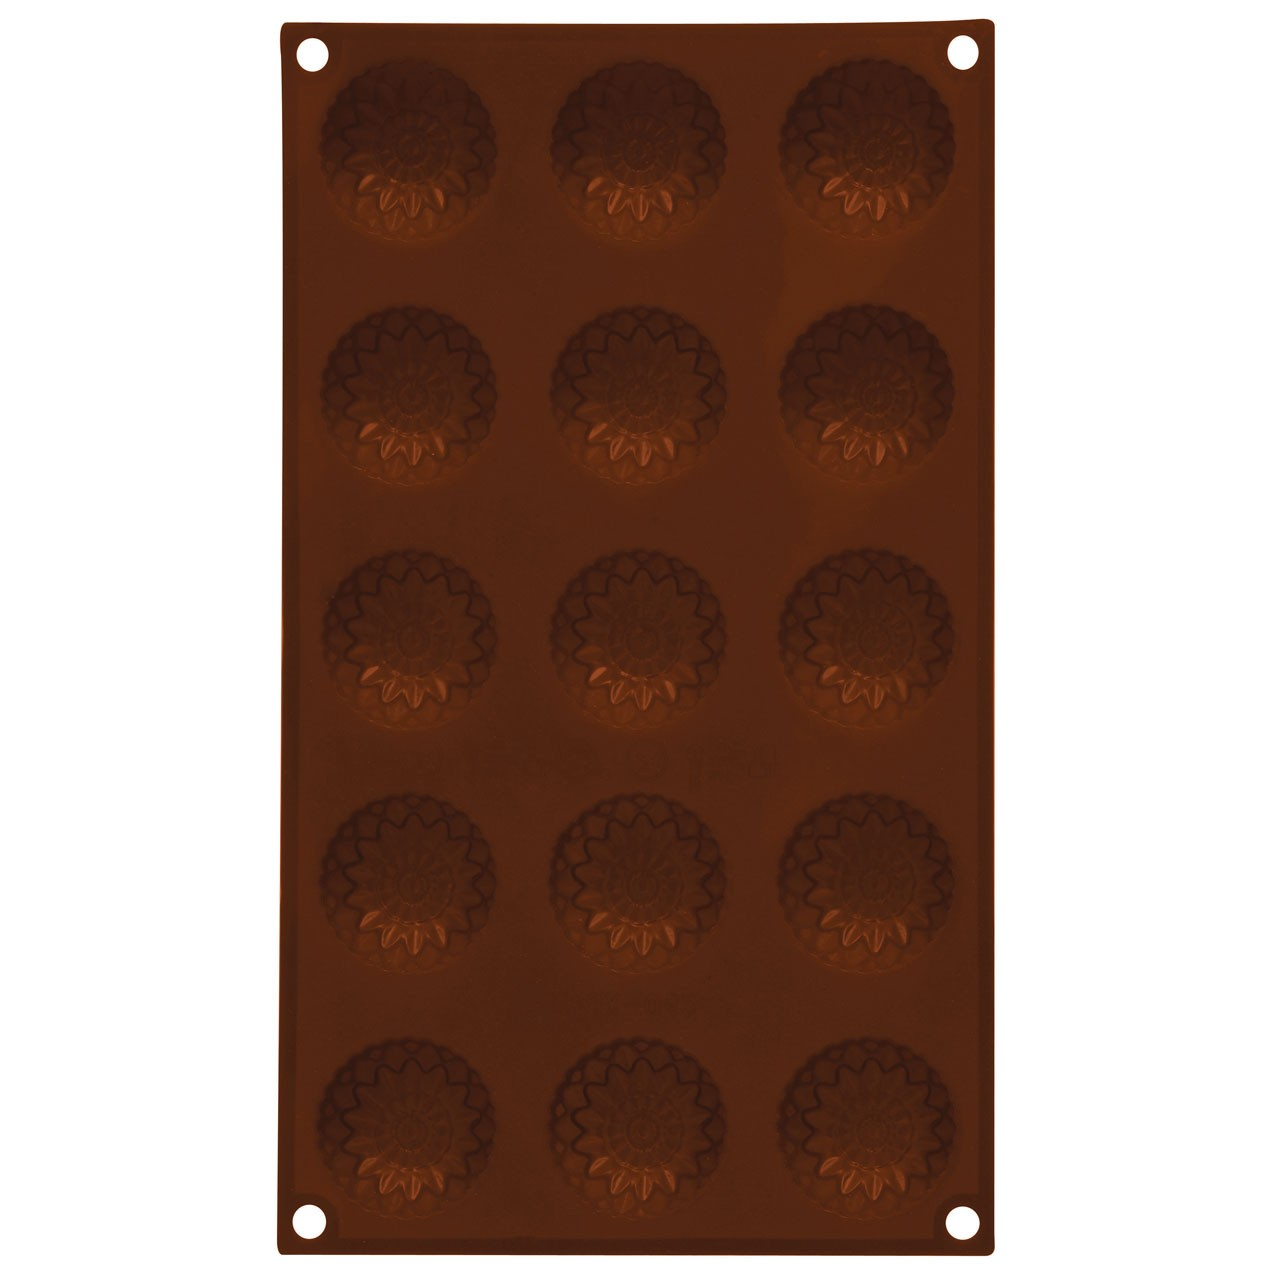 15 Sunflower Chocolate Mould Tray - Brown